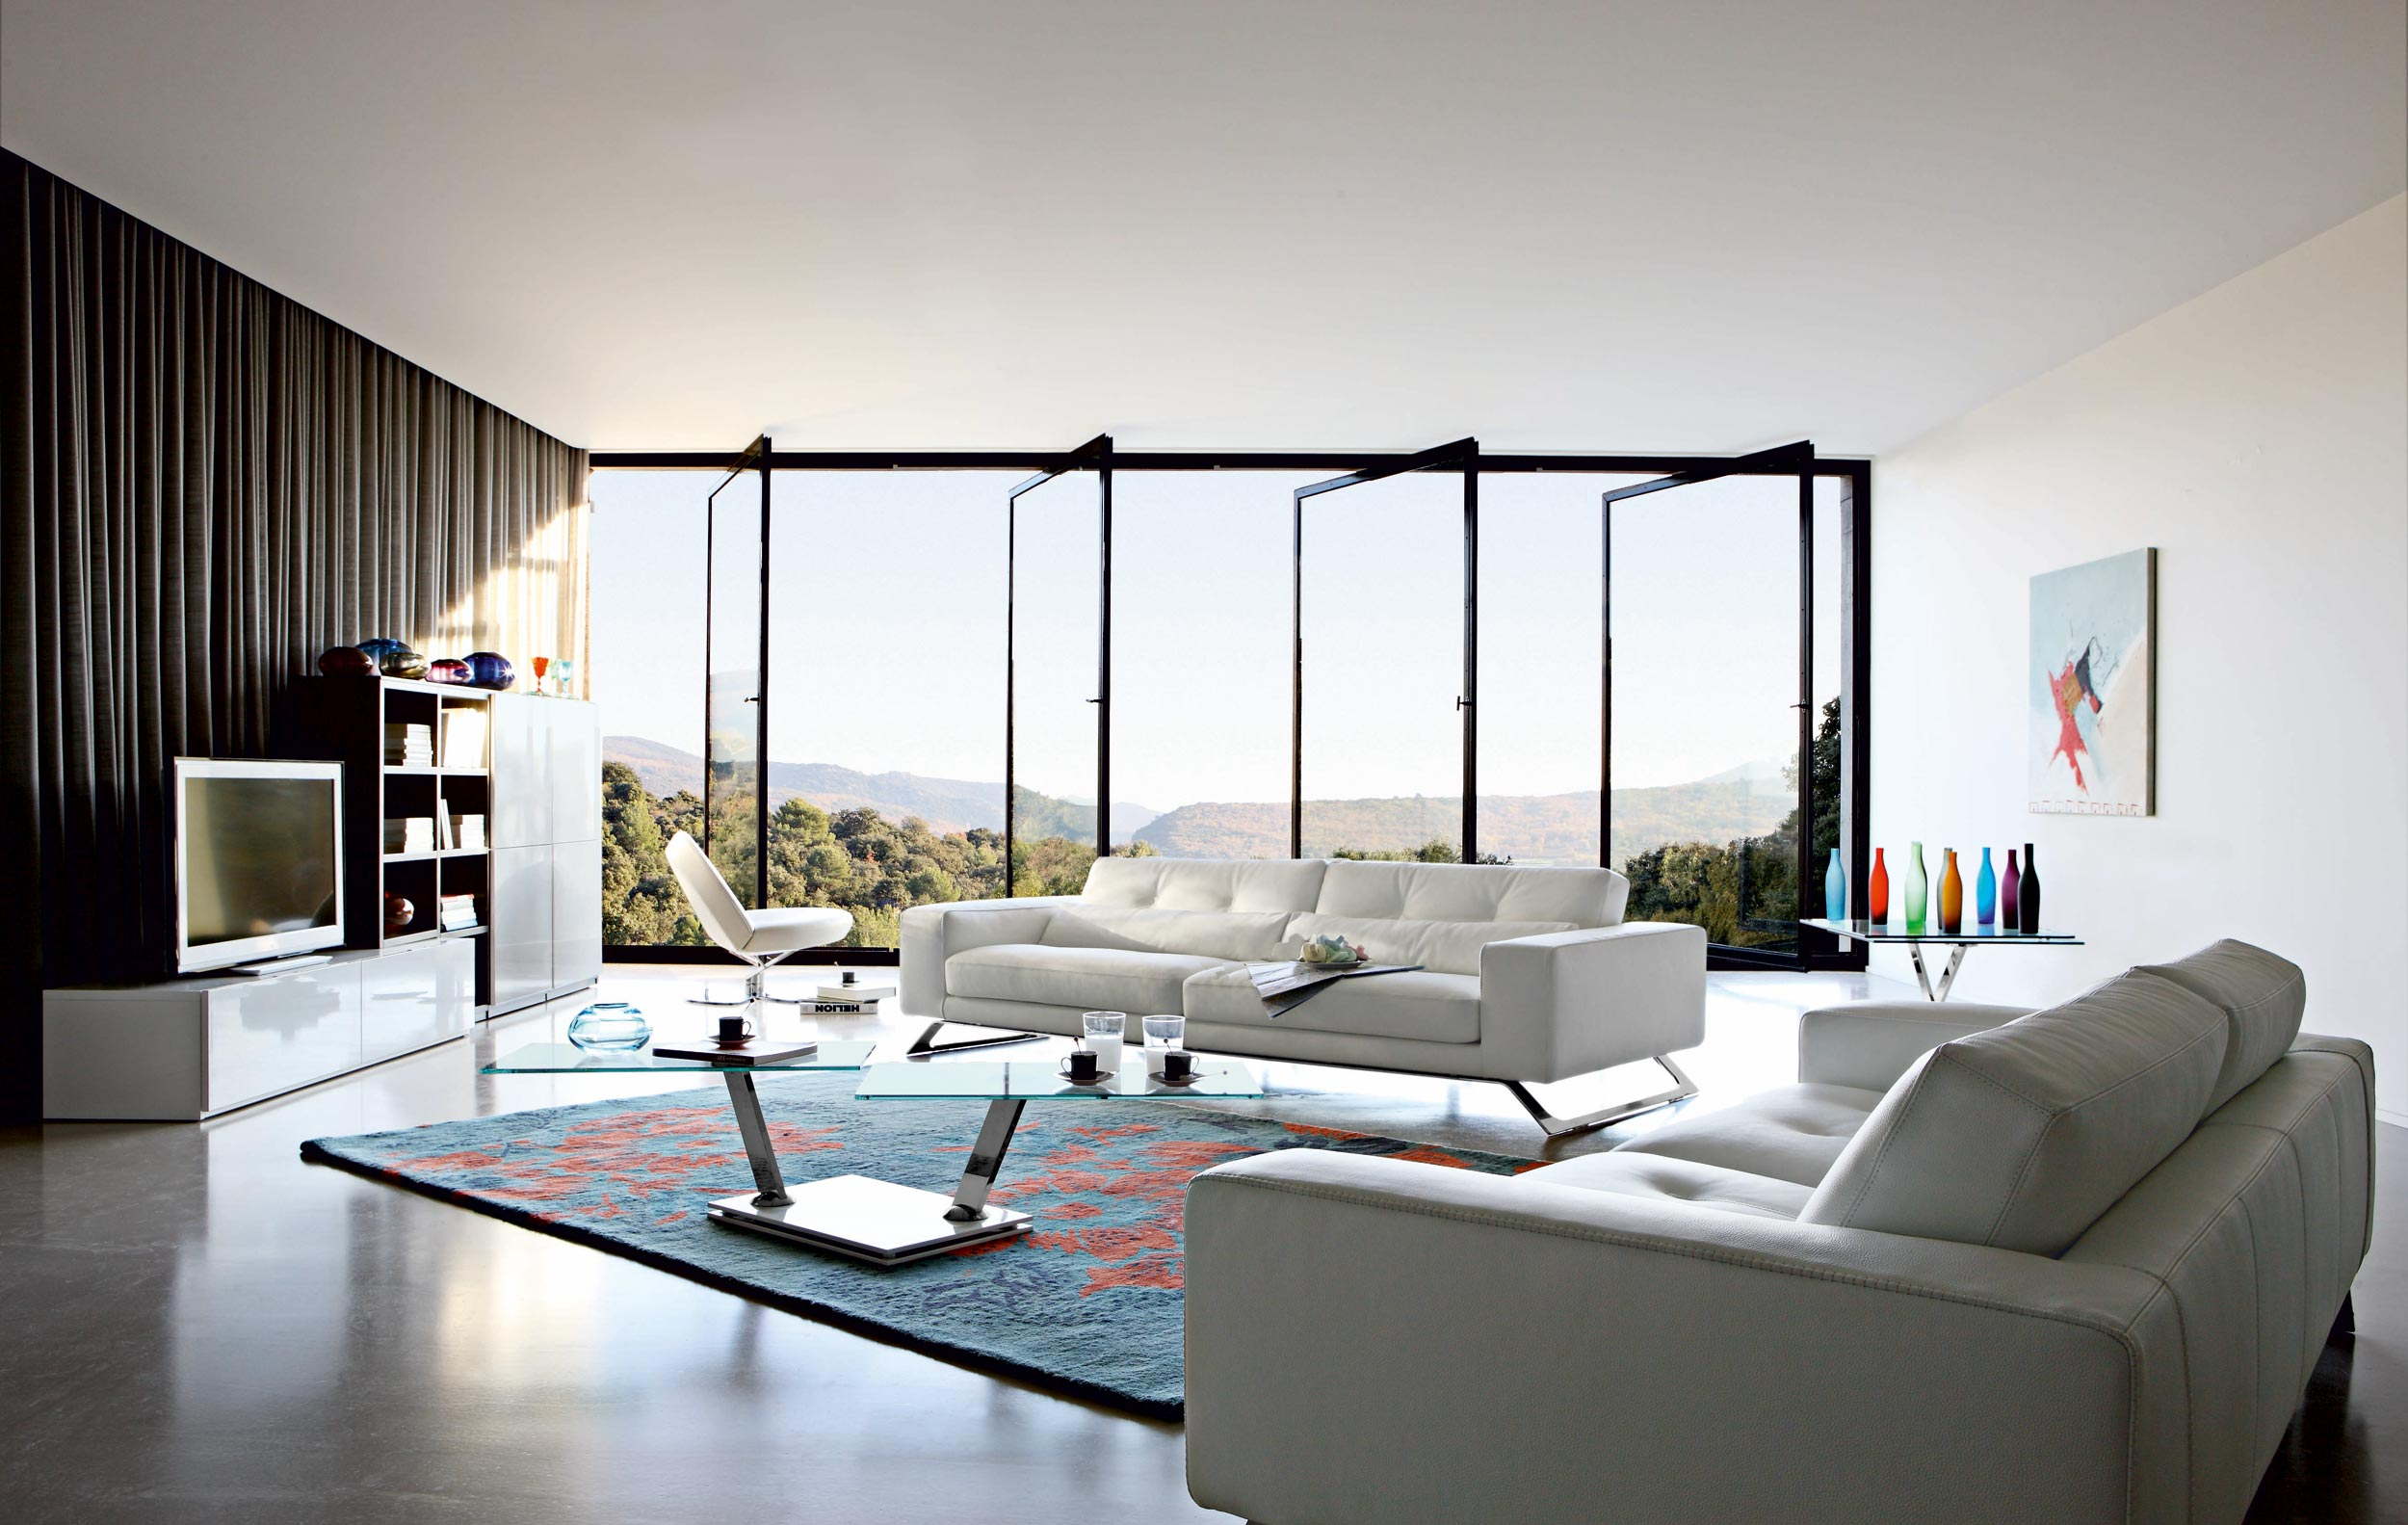 Living room inspiration 120 modern sofas by roche bobois for Innendesign wohnzimmer